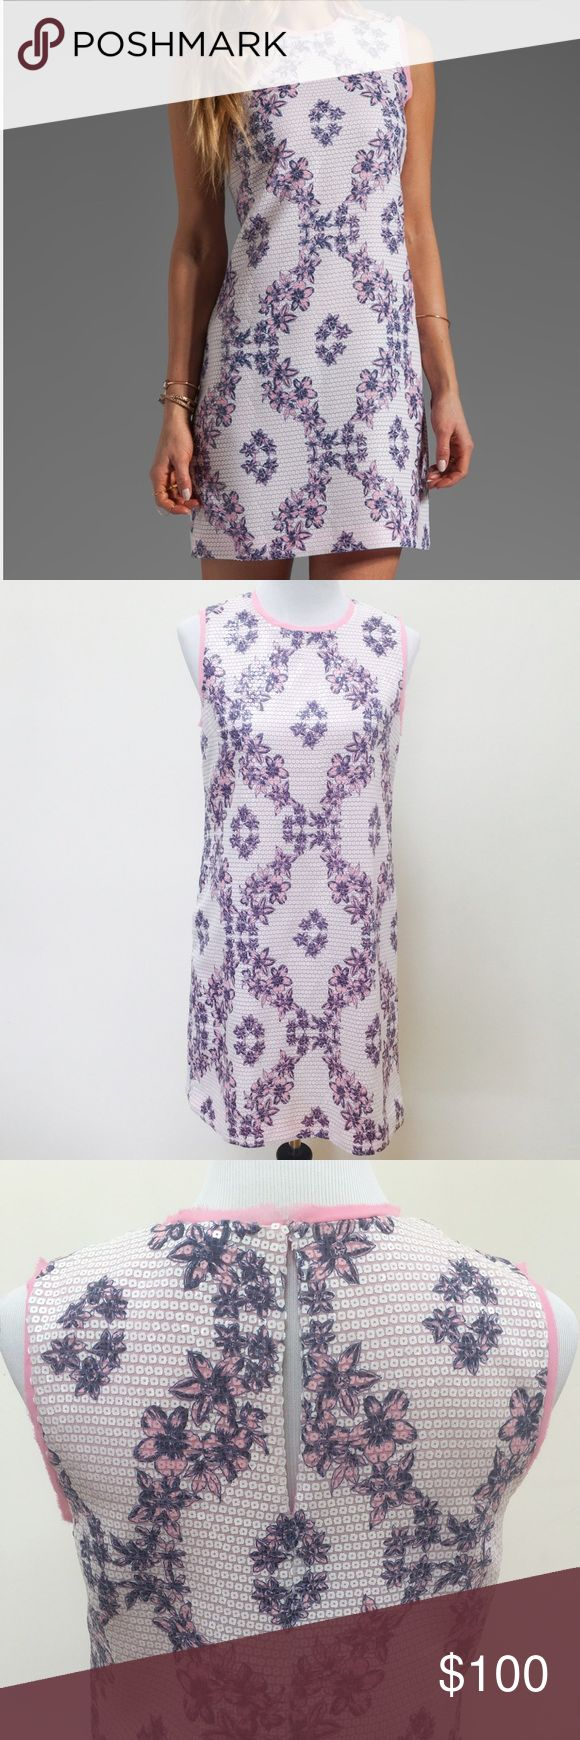 """Juicy Couture floral sequin dress Printed sequin dress in angel/bardot, fully lined, sequin throughout, back key hole with hook and eye closure, approx 33"""" in length Juicy Couture Dresses"""